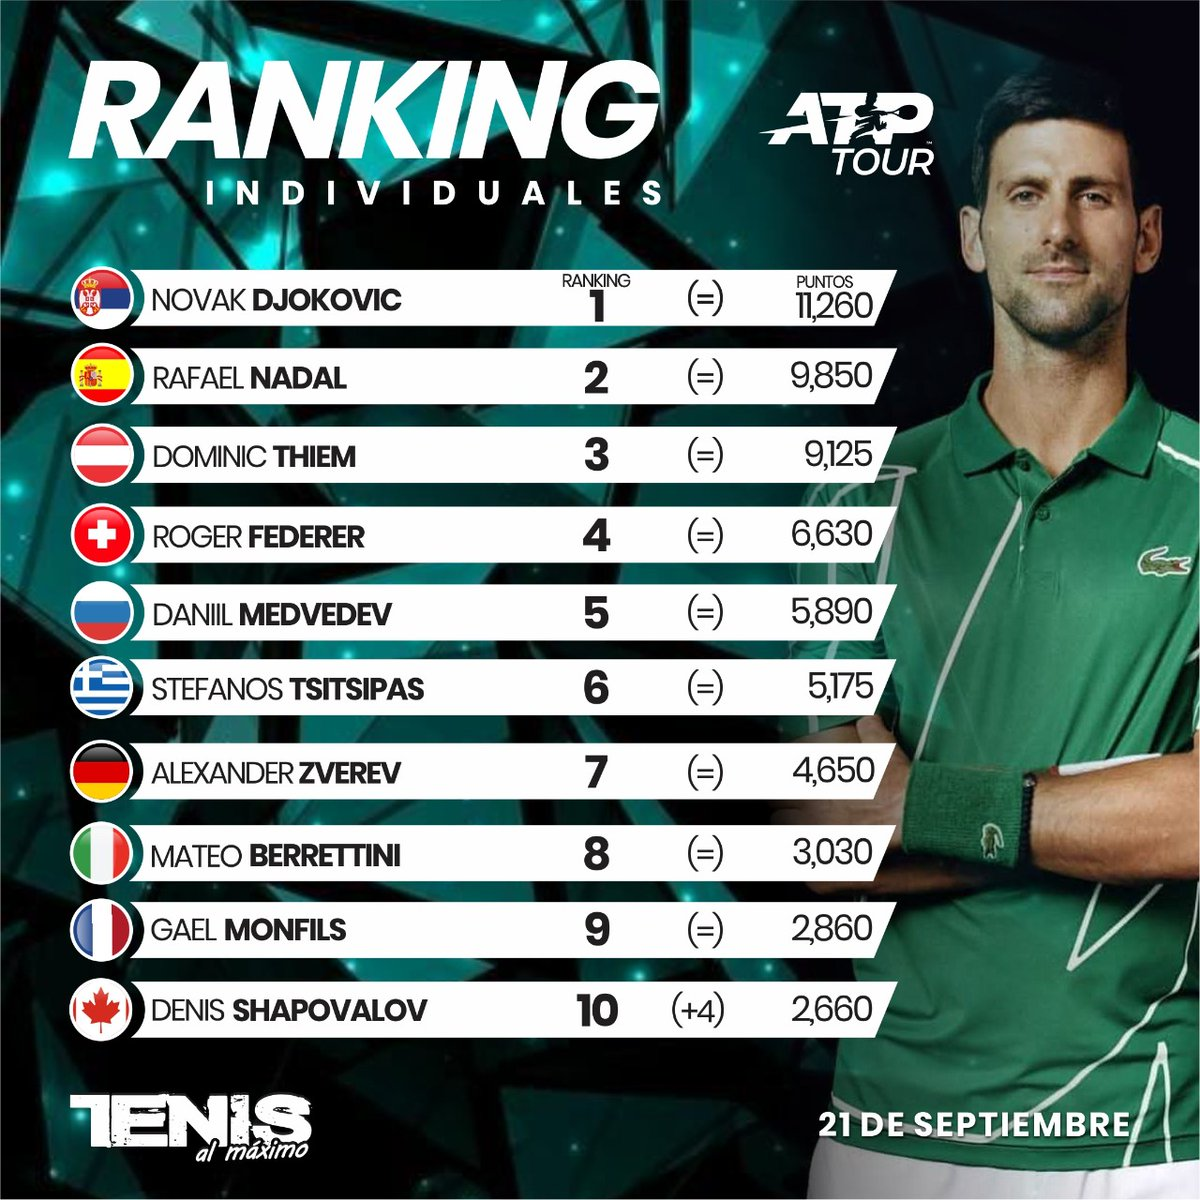 #Ranking | Clasificación profesional ATP Top Ten al lunes 21 septiembre 2020.... #TenisalMáximo #TenisxTAMTV #SomosTAM #TAMTV #Tenis #Tennis #Sports #TennisLove #Tennisfan #TennisPlayers #Tennisvideo #Comunidad #ATP #Top10 https://t.co/eYfC3BeKCg